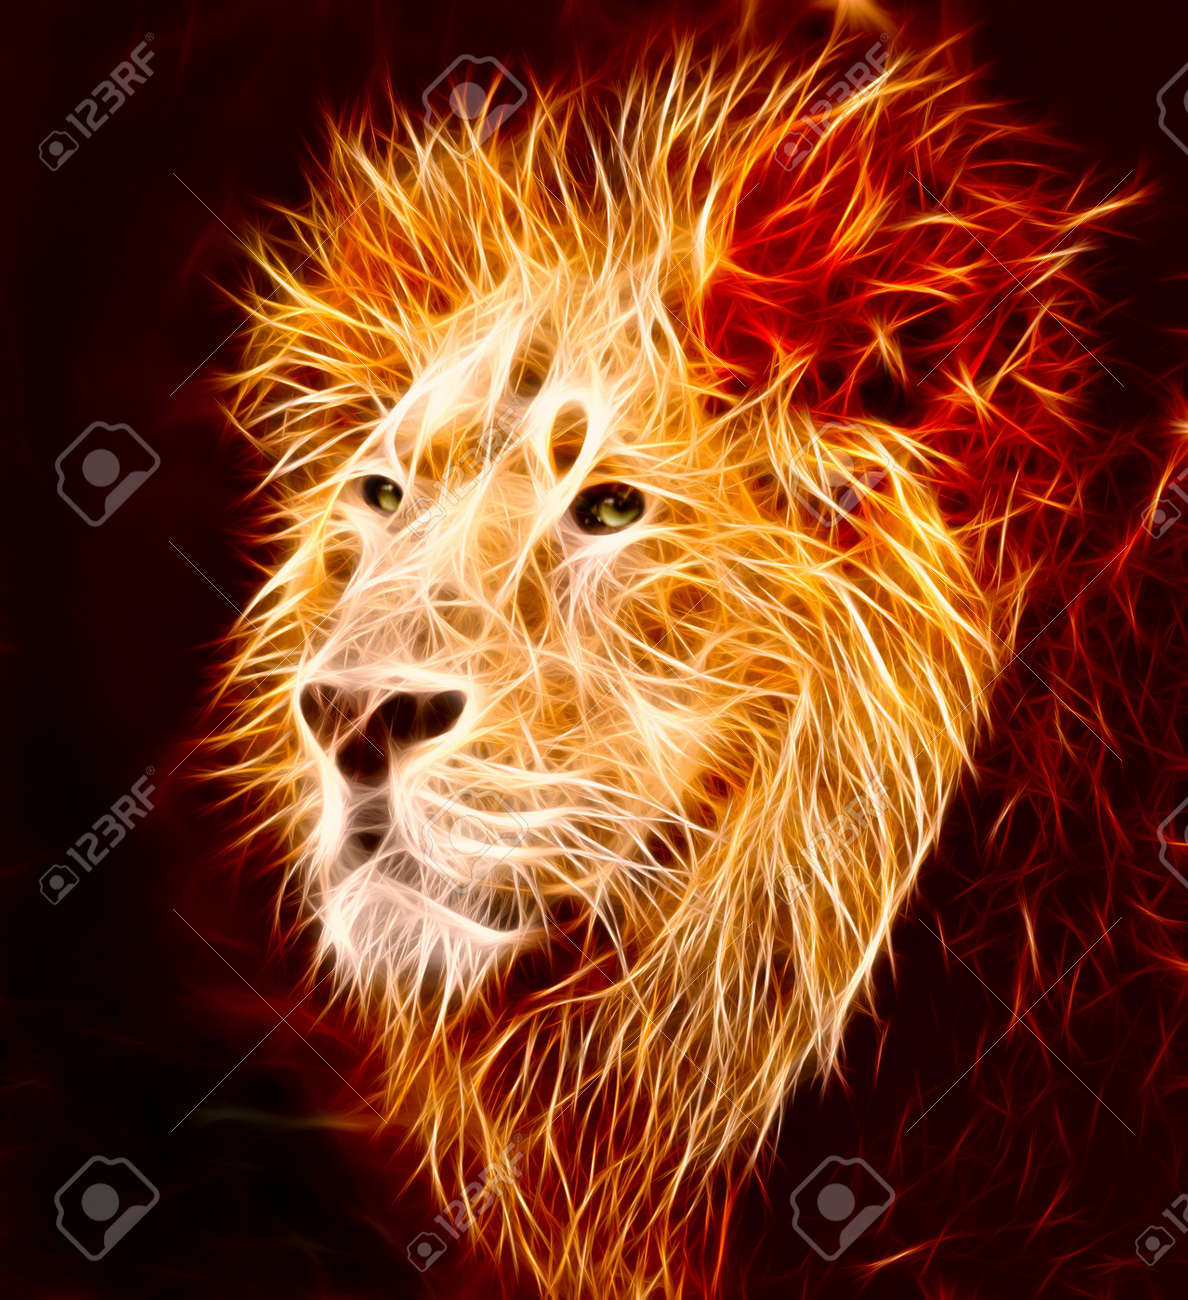 A big male Asiatic lion with lapping flames - 5067201